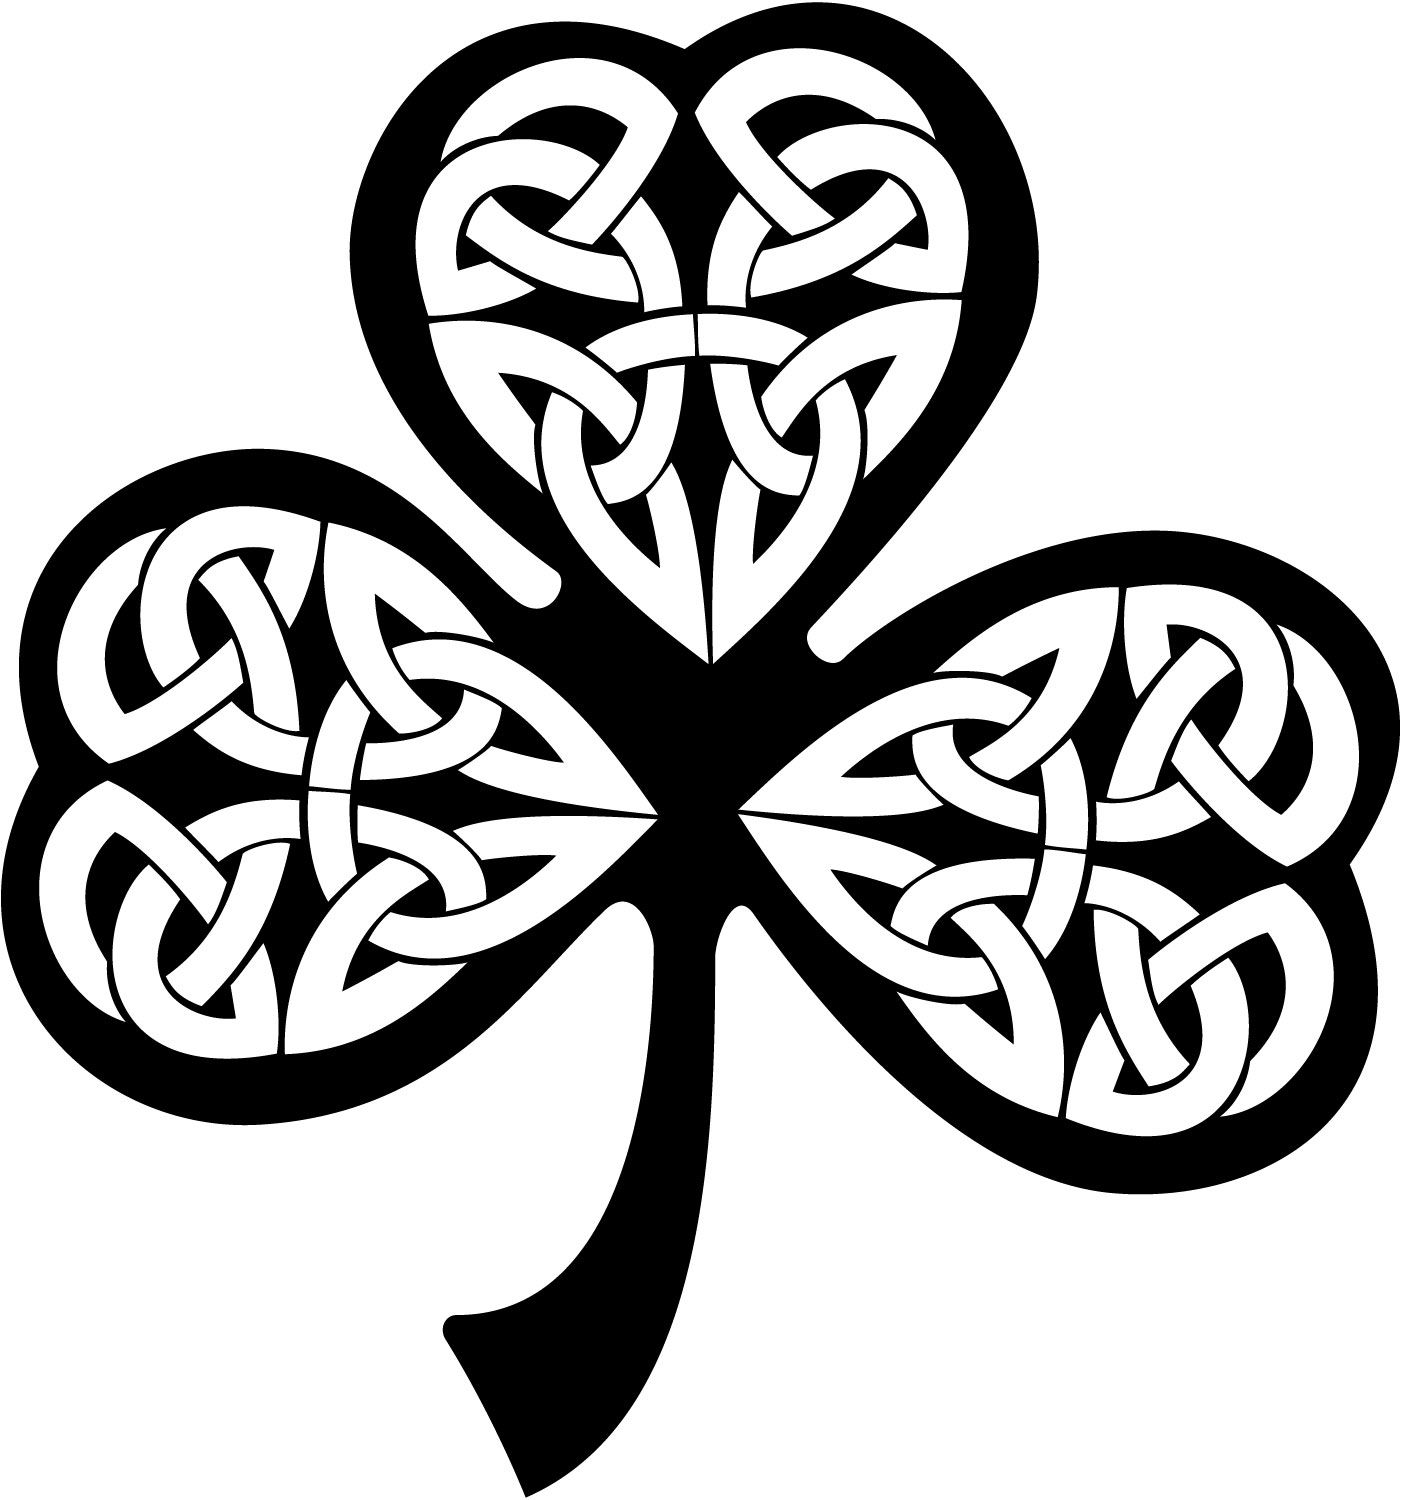 Clover Celtic Knot Decal Sticker You Pick Color